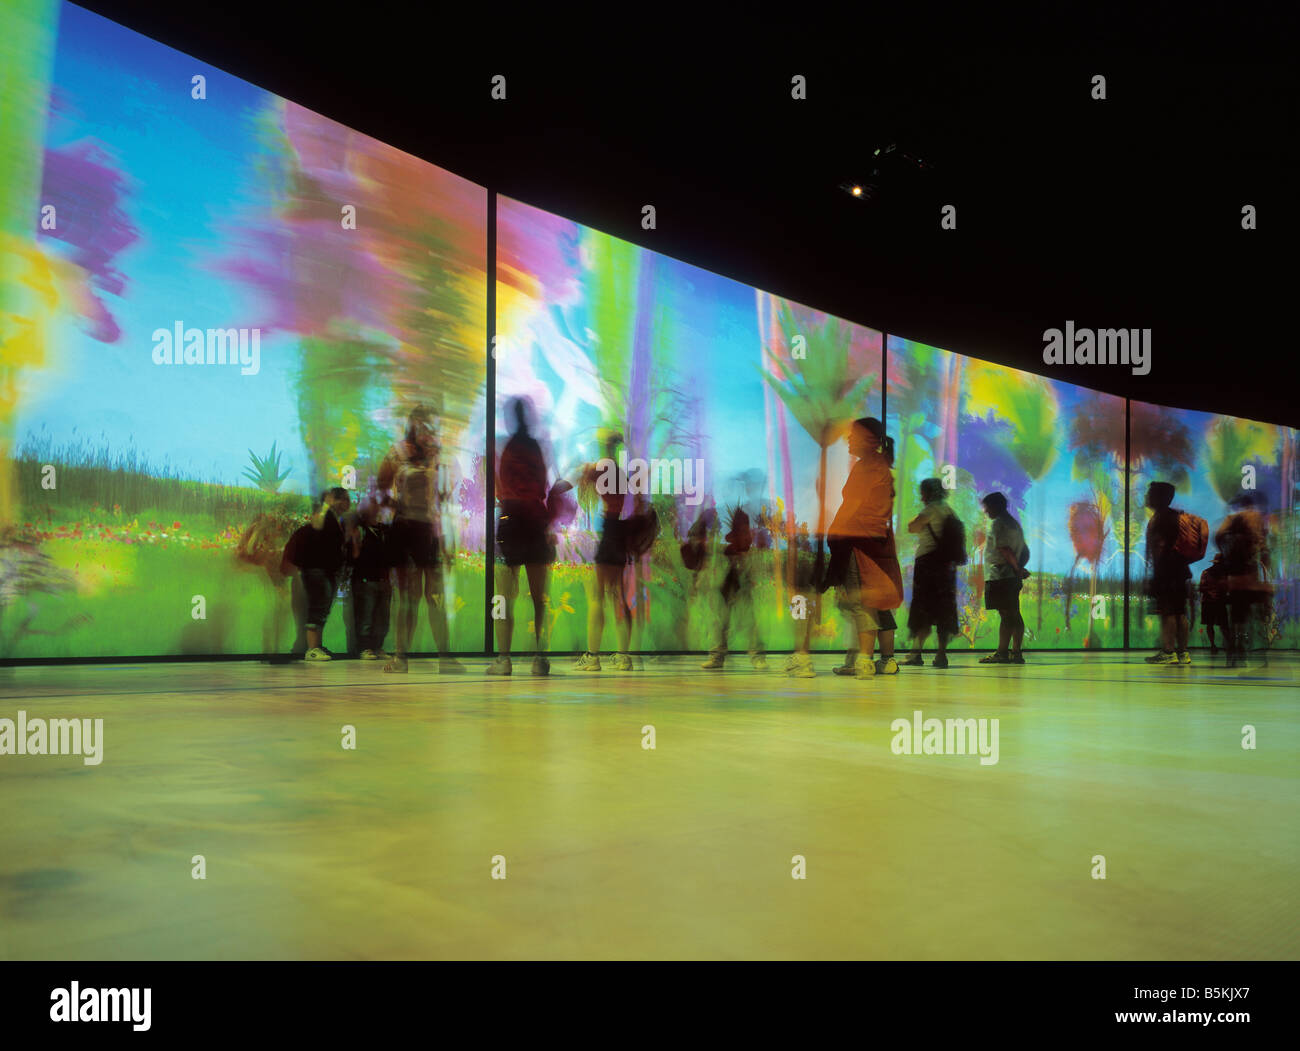 People watching temporary installation at the Water Expo (long exposure), Zaragoza, Spain. - Stock Image